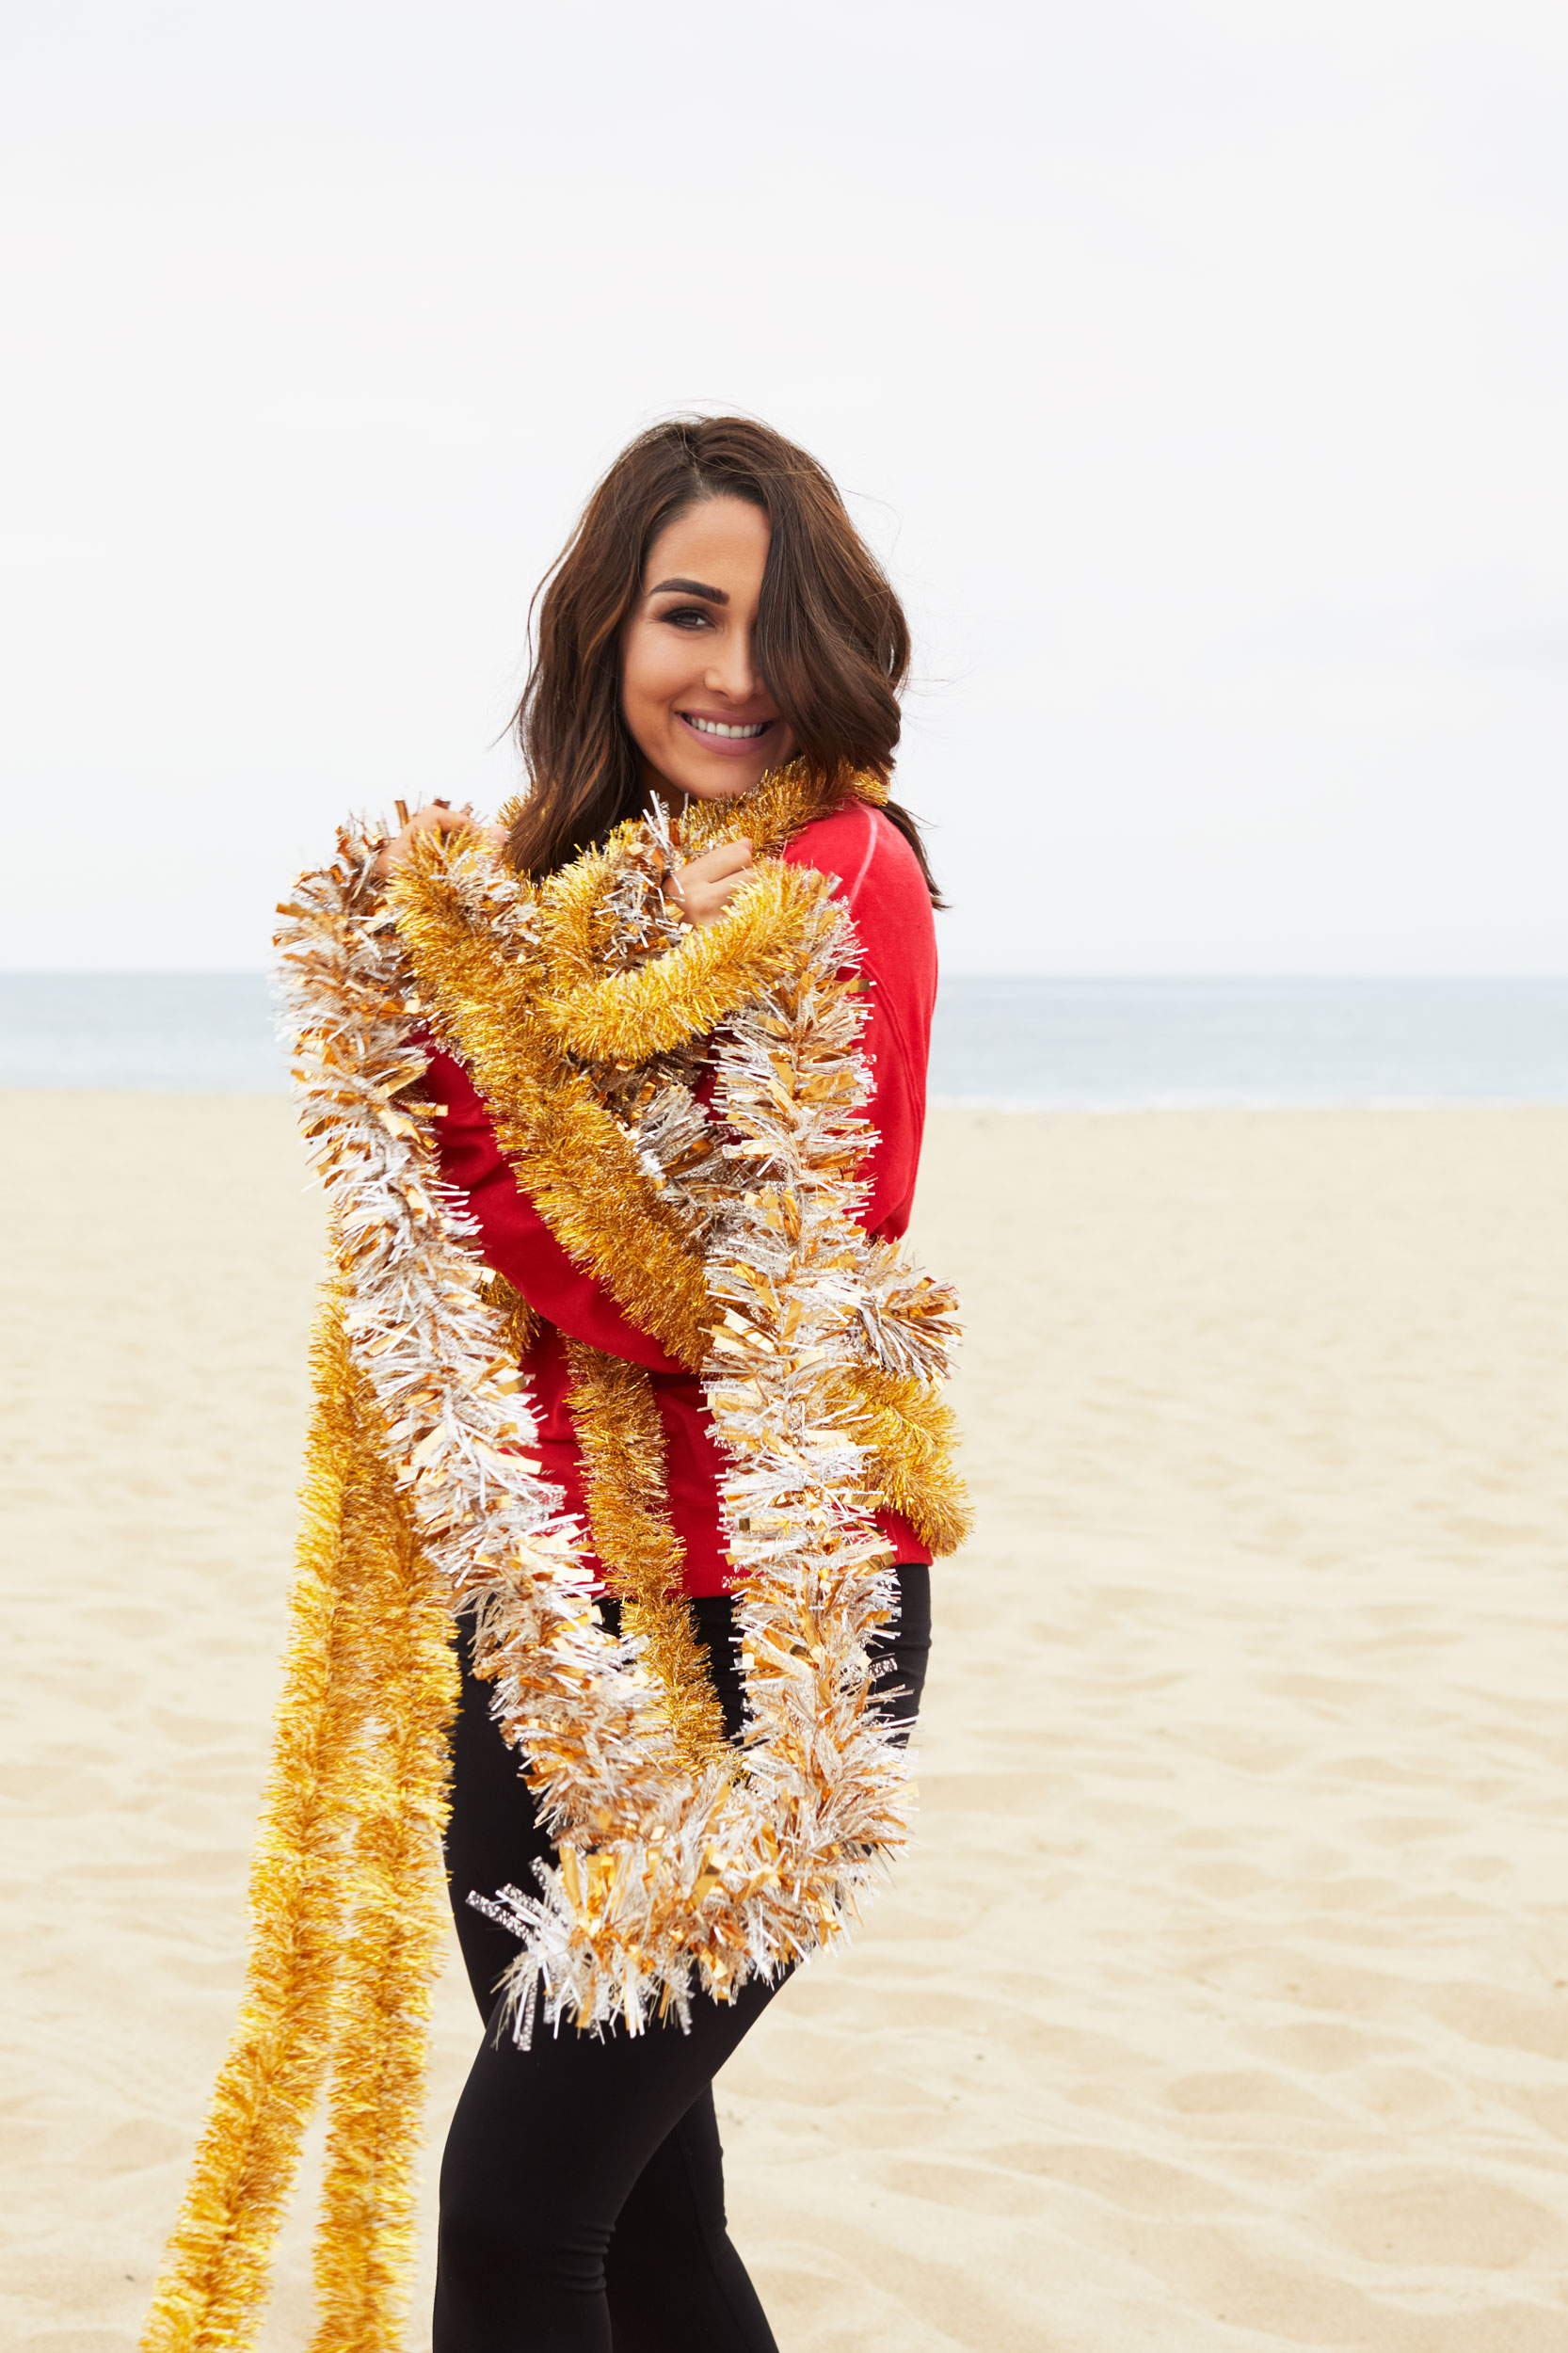 WWE diva Bree Bella on the beach with Christmas garland